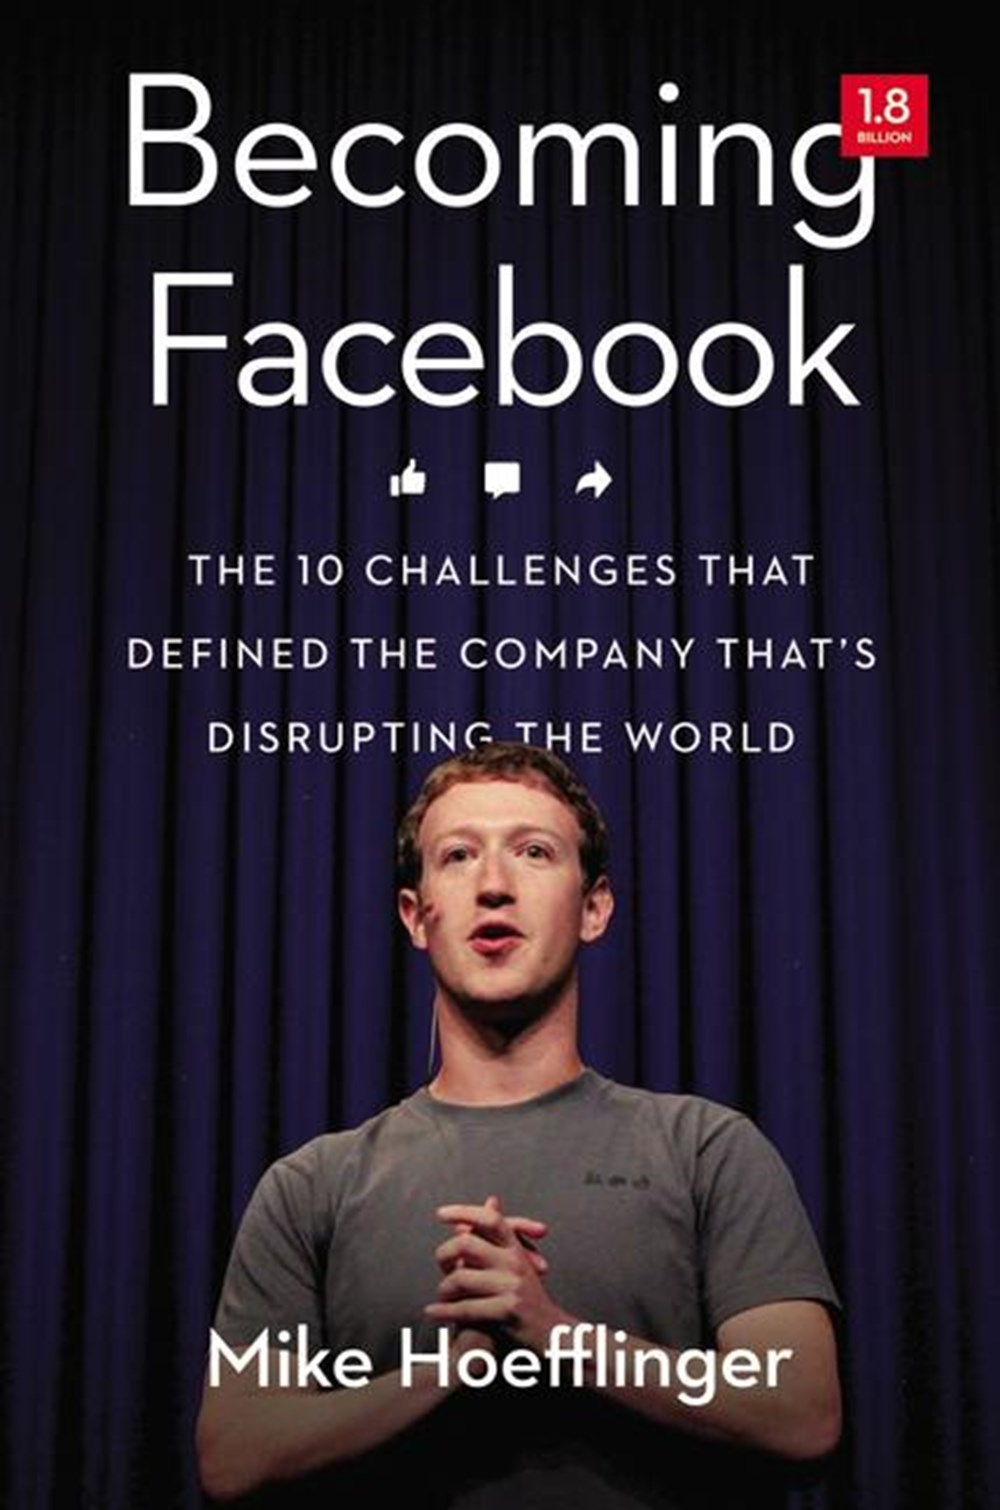 Becoming Facebook The 10 Challenges That Defined the Company That's Disrupting the World